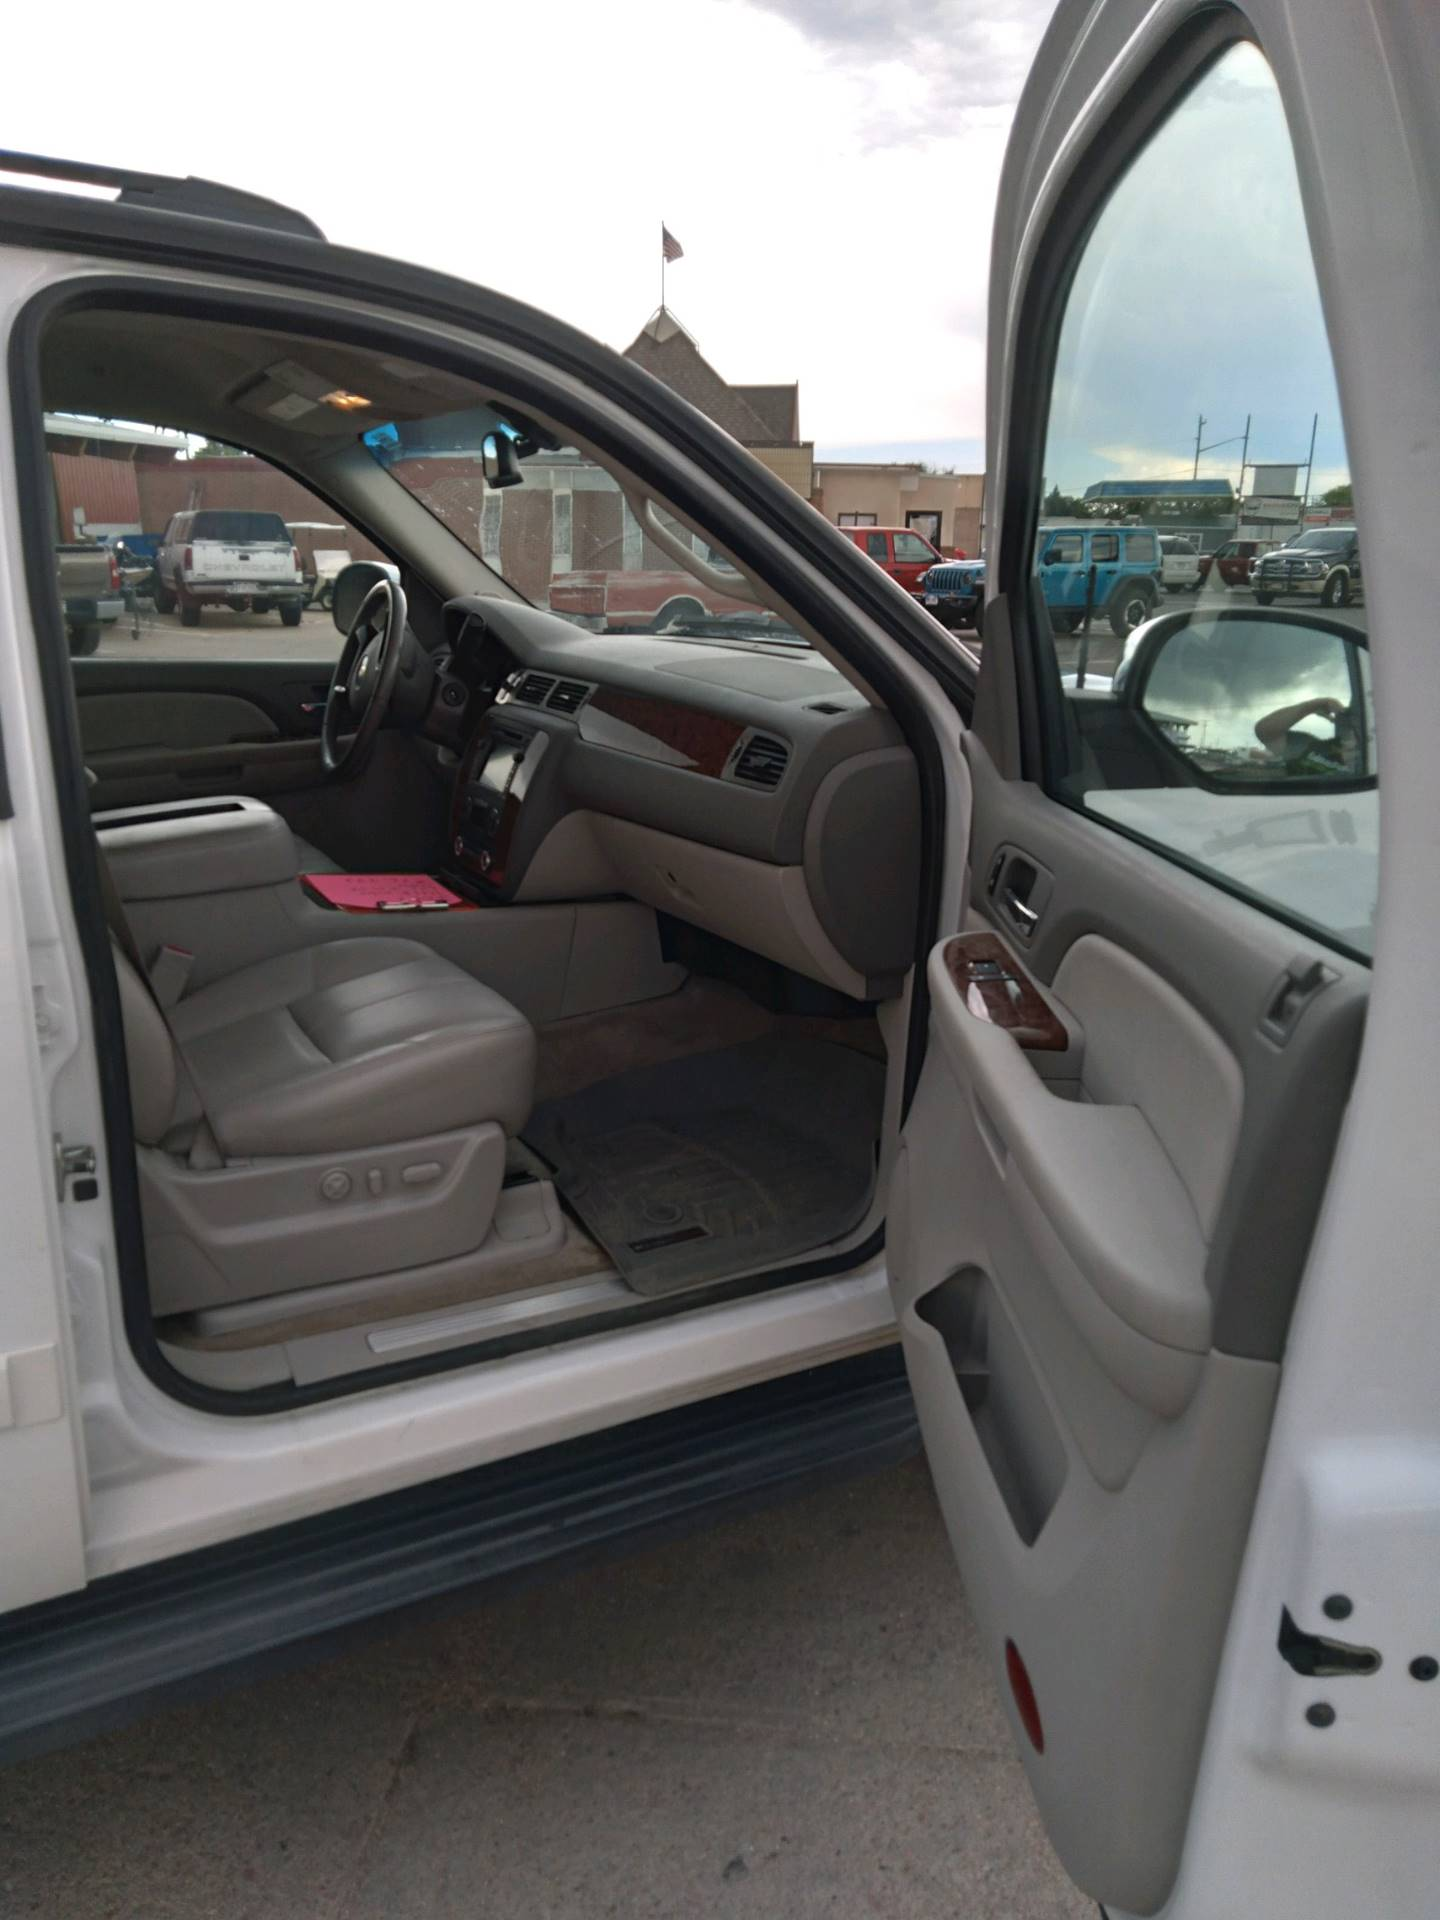 2007 Chevrolet AVALANCHE in Sterling, Colorado - Photo 4